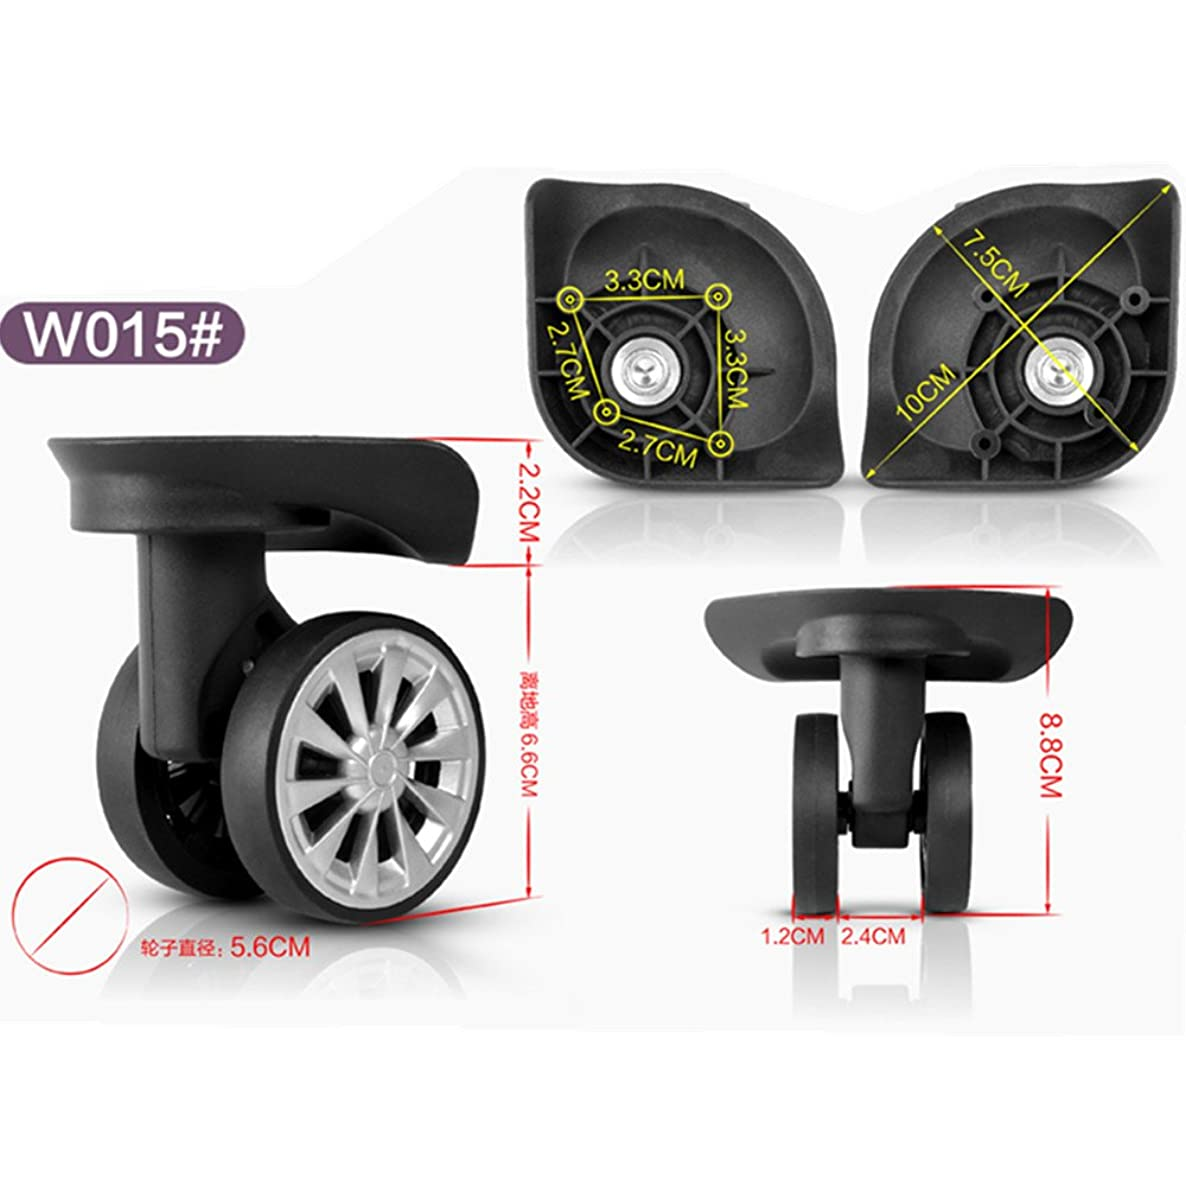 Faith Gao Must 888 A pair/set W015# Spinner Draw bar box wheels/suitcase wheels/luggage wheels replacement For Repair